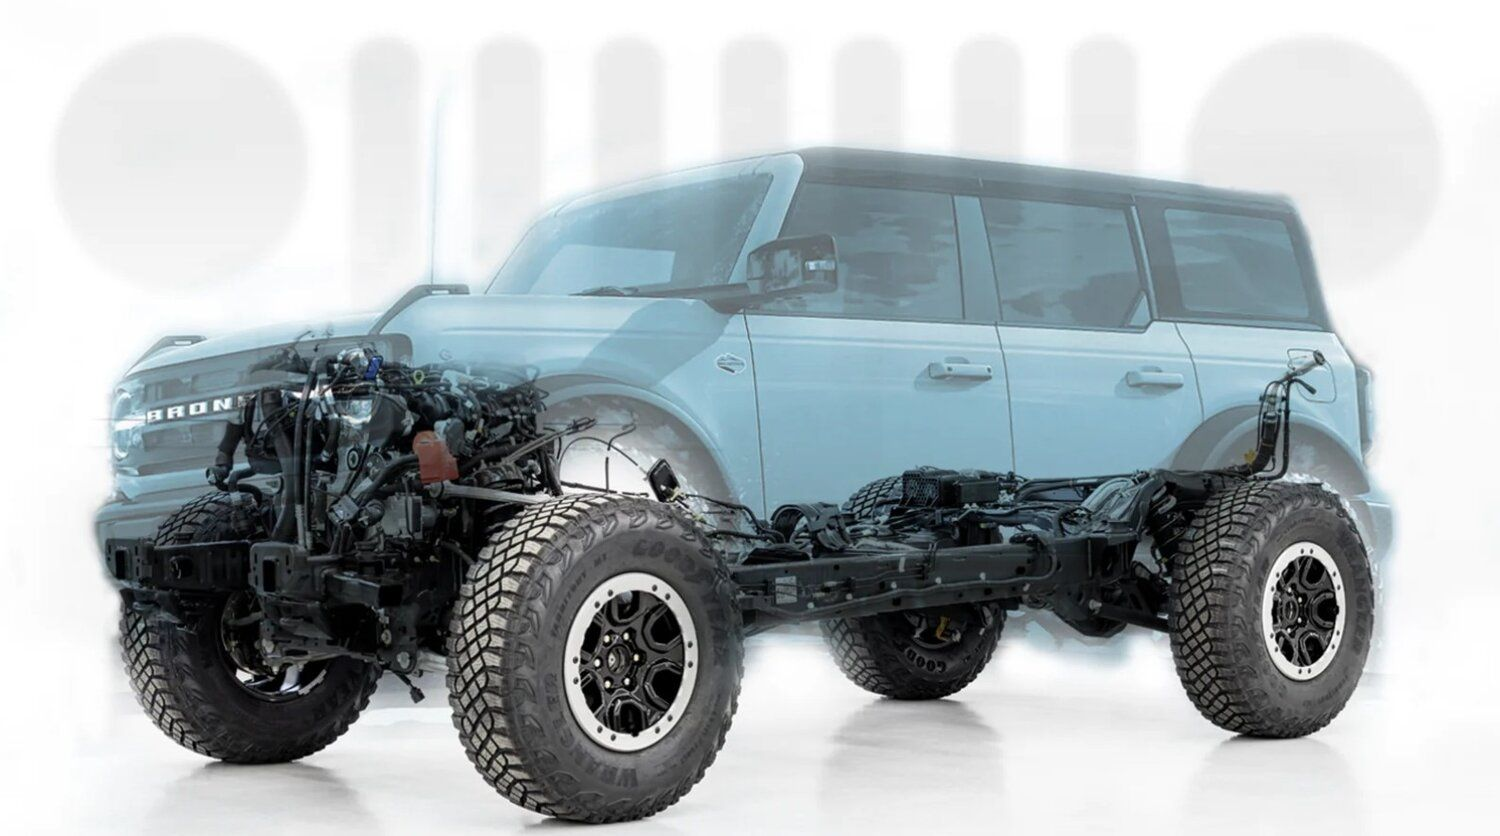 Extremely Detailed Look Into 2021 Ford Bronco S Engineering Designed To Take On Jeep Stangbangers In 2020 Ford Bronco Jeep Classic Ford Broncos